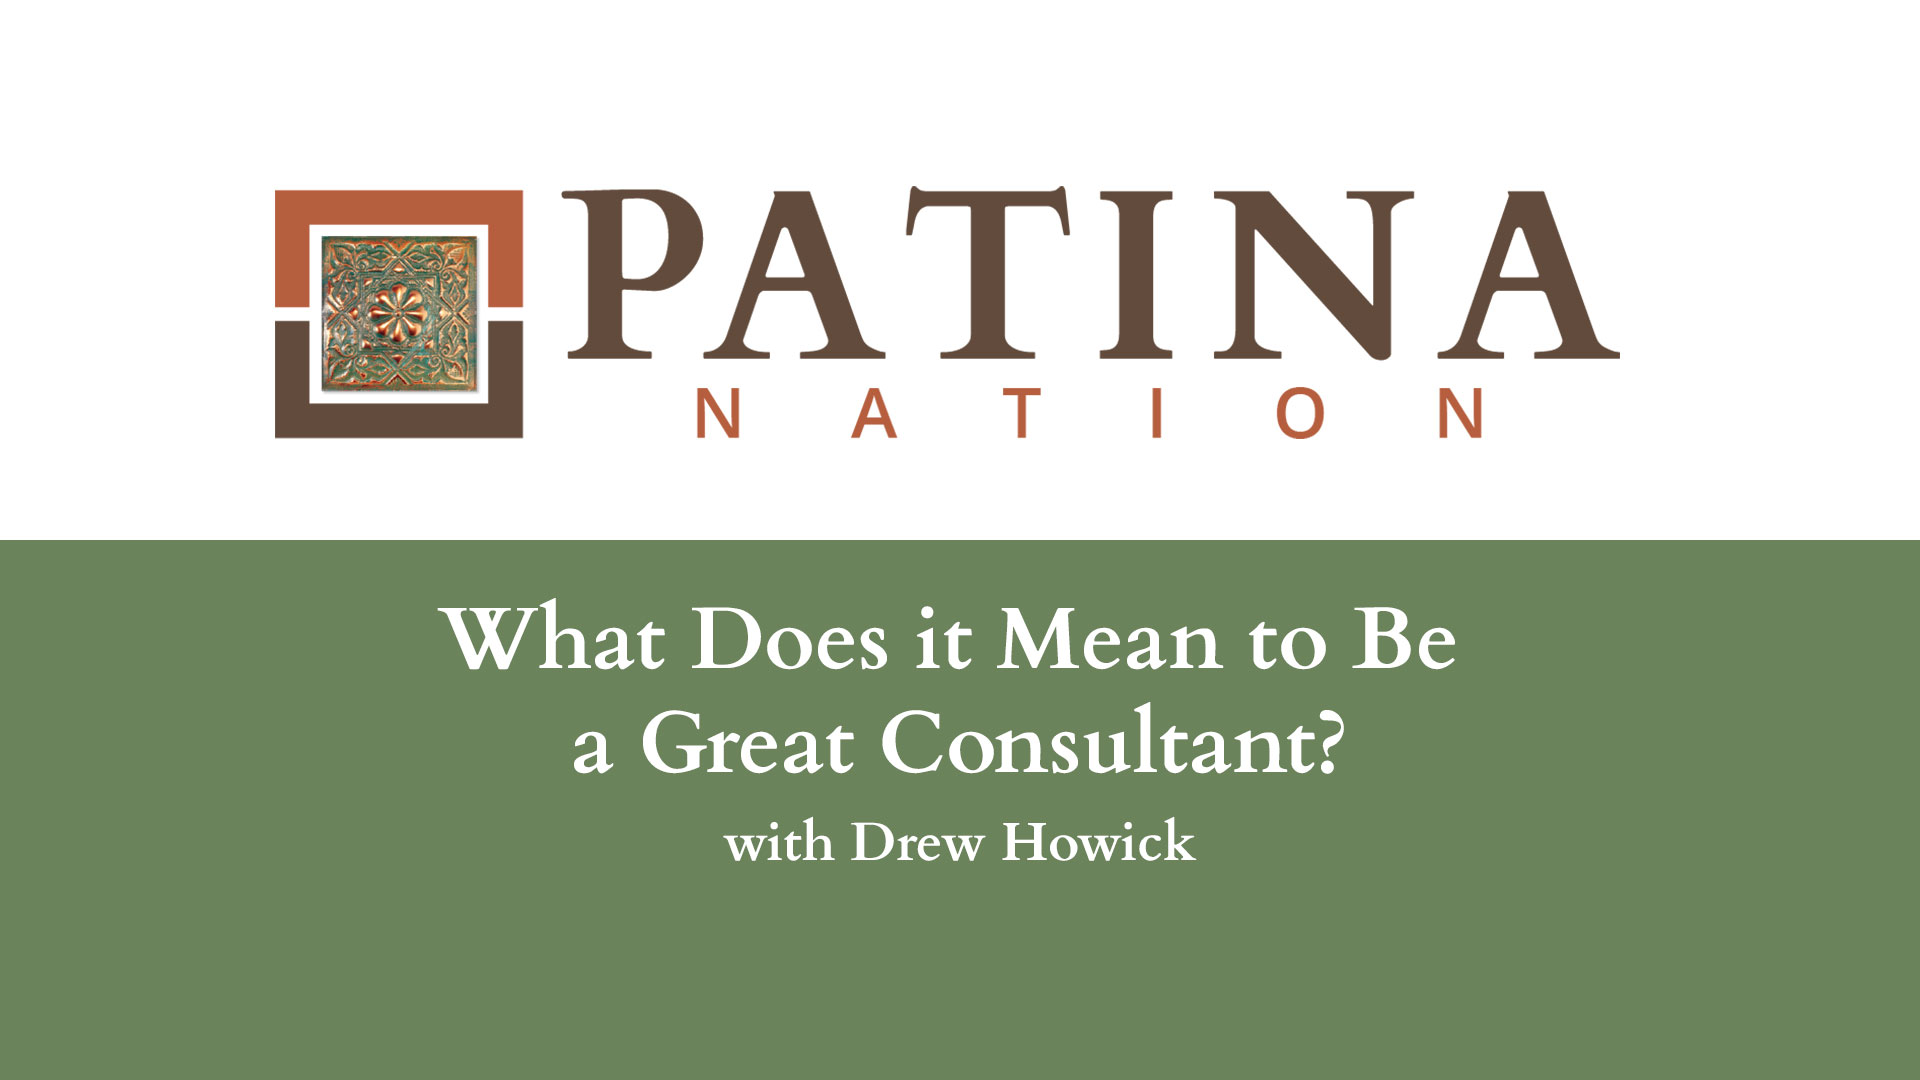 What Does it Mean to Be a Great Consultant?